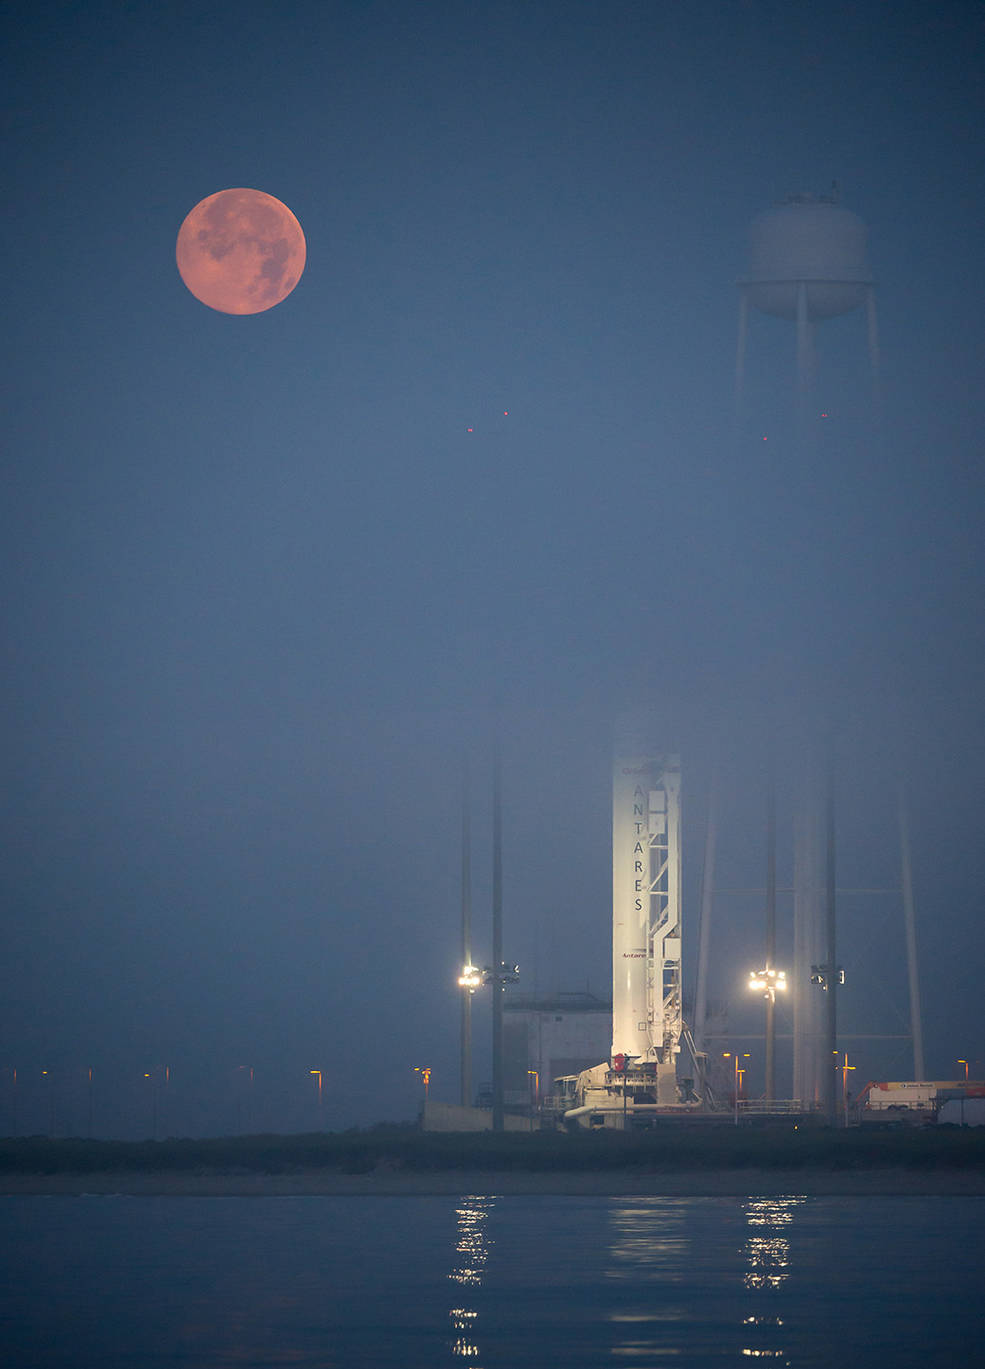 Super moon with the Antares rocket